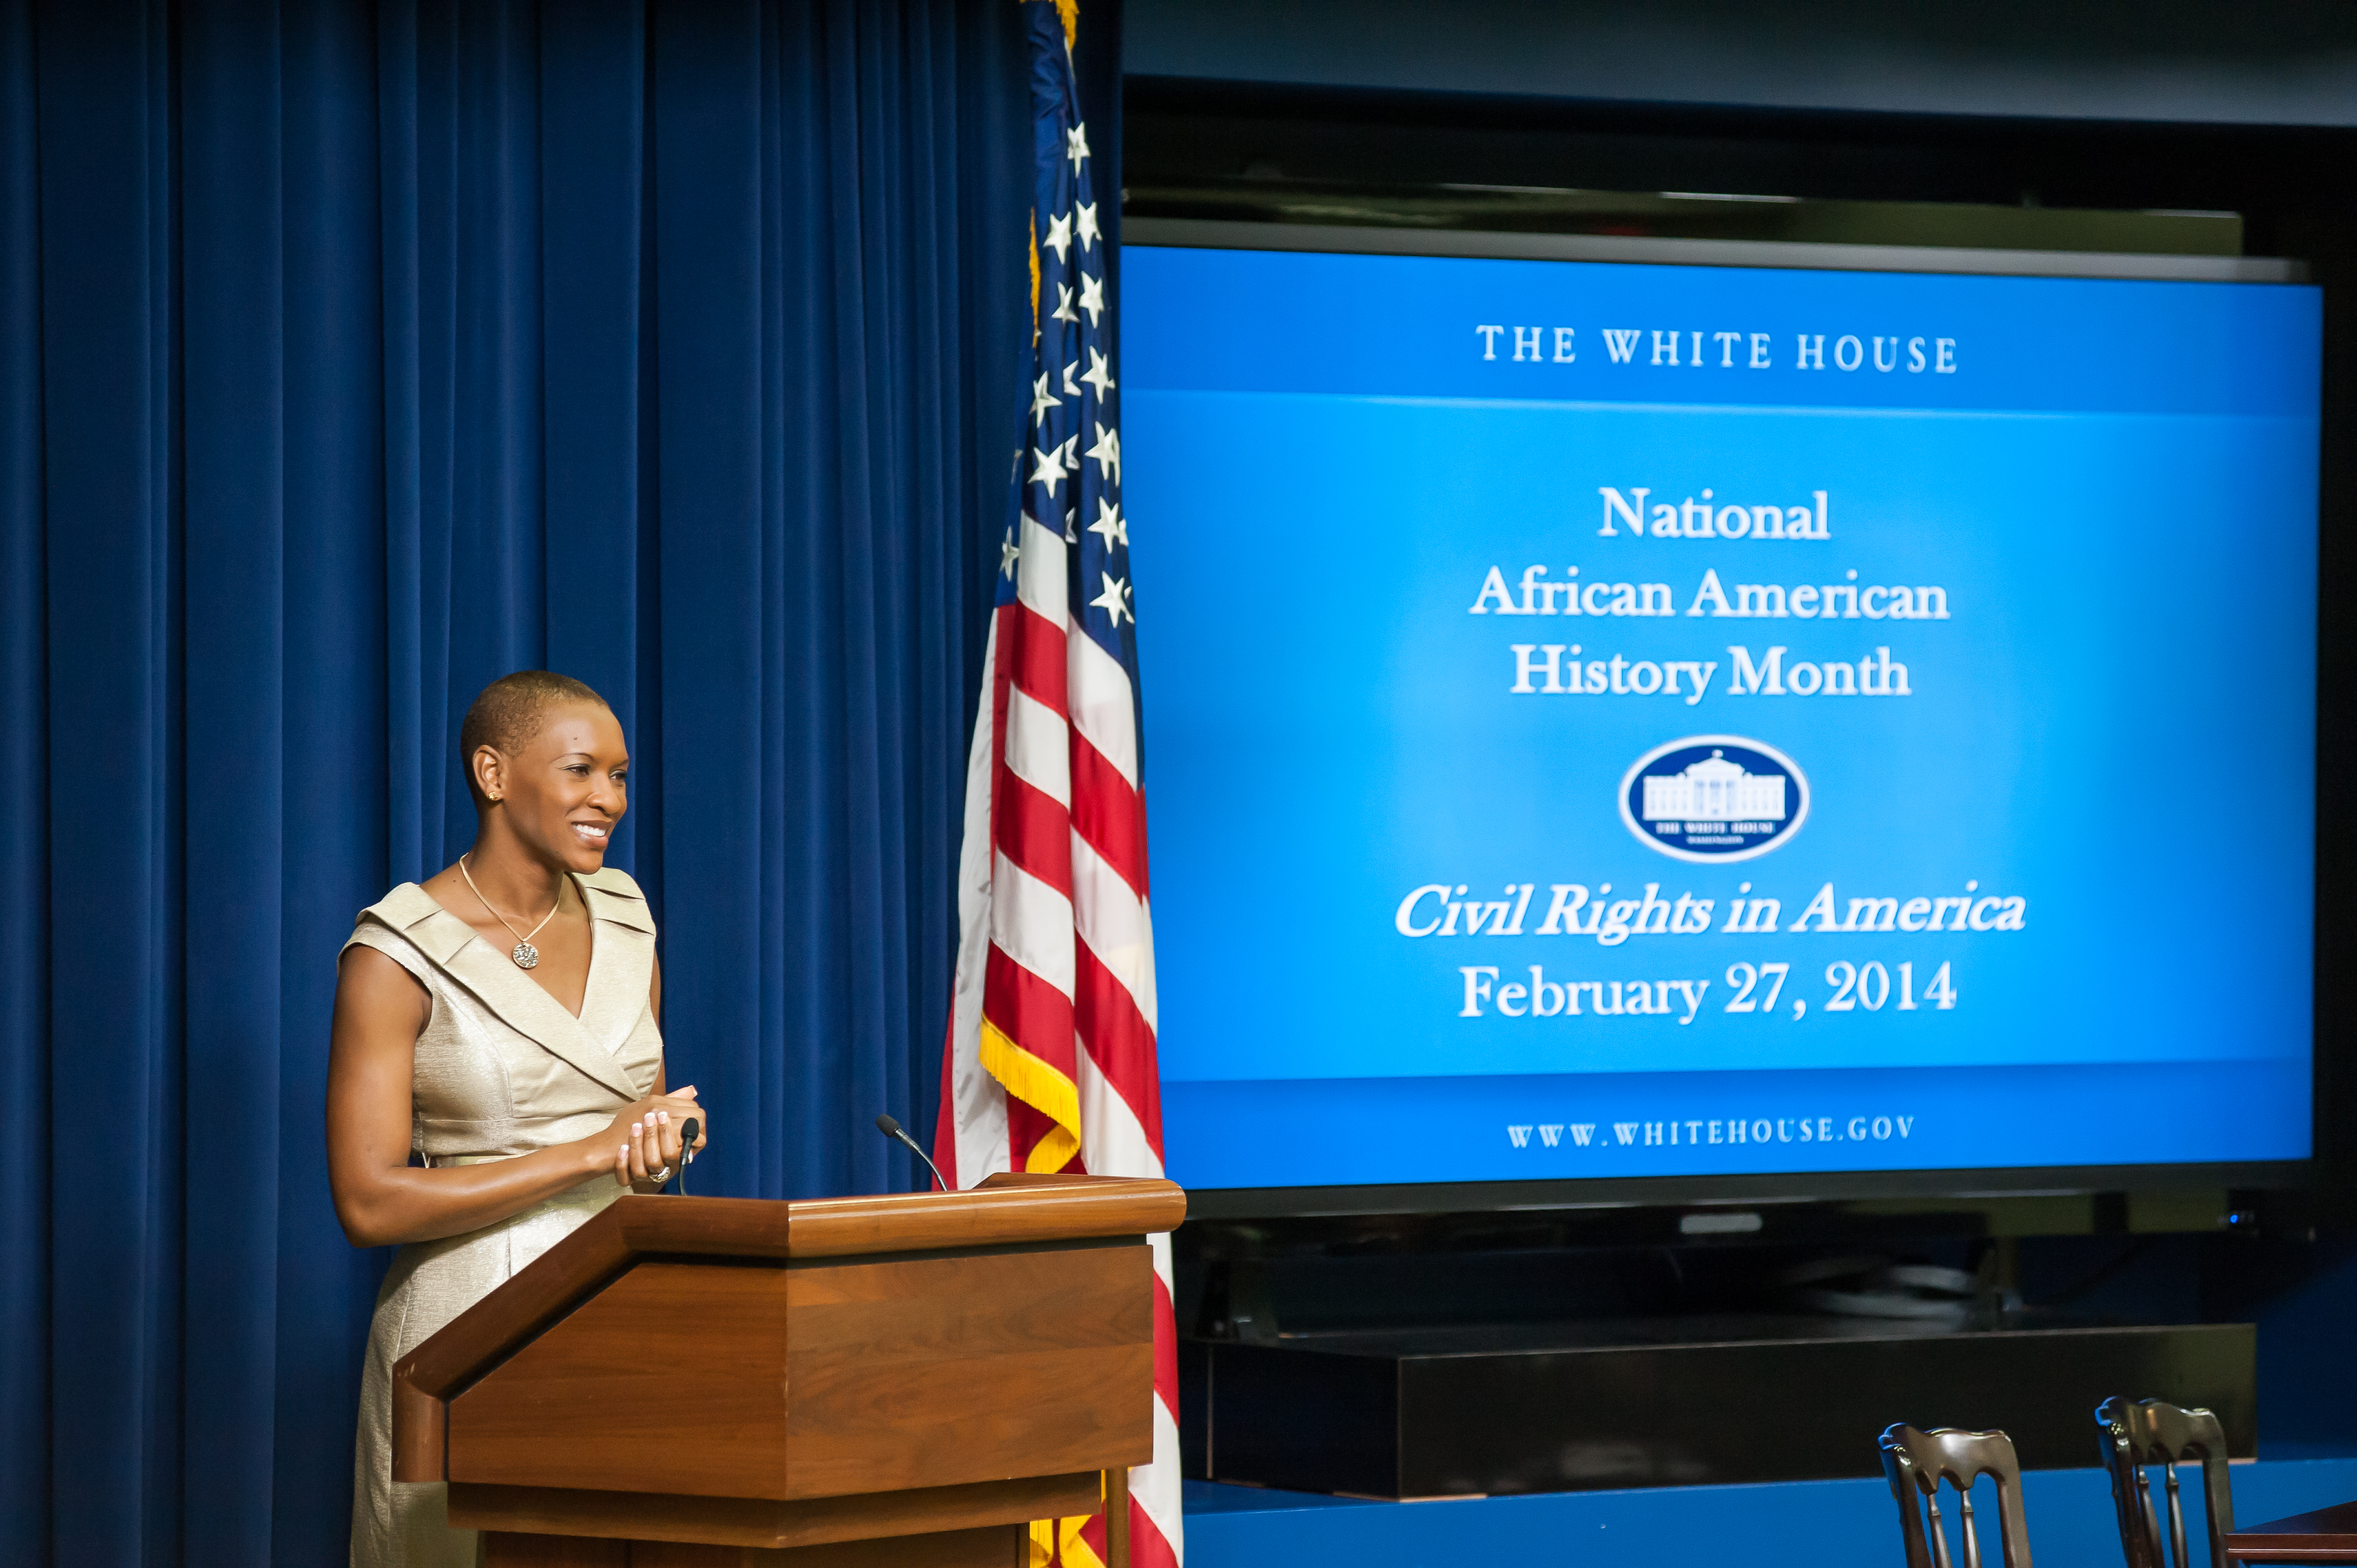 Claudia Gordon Delivers Remarks at Last Week's Event